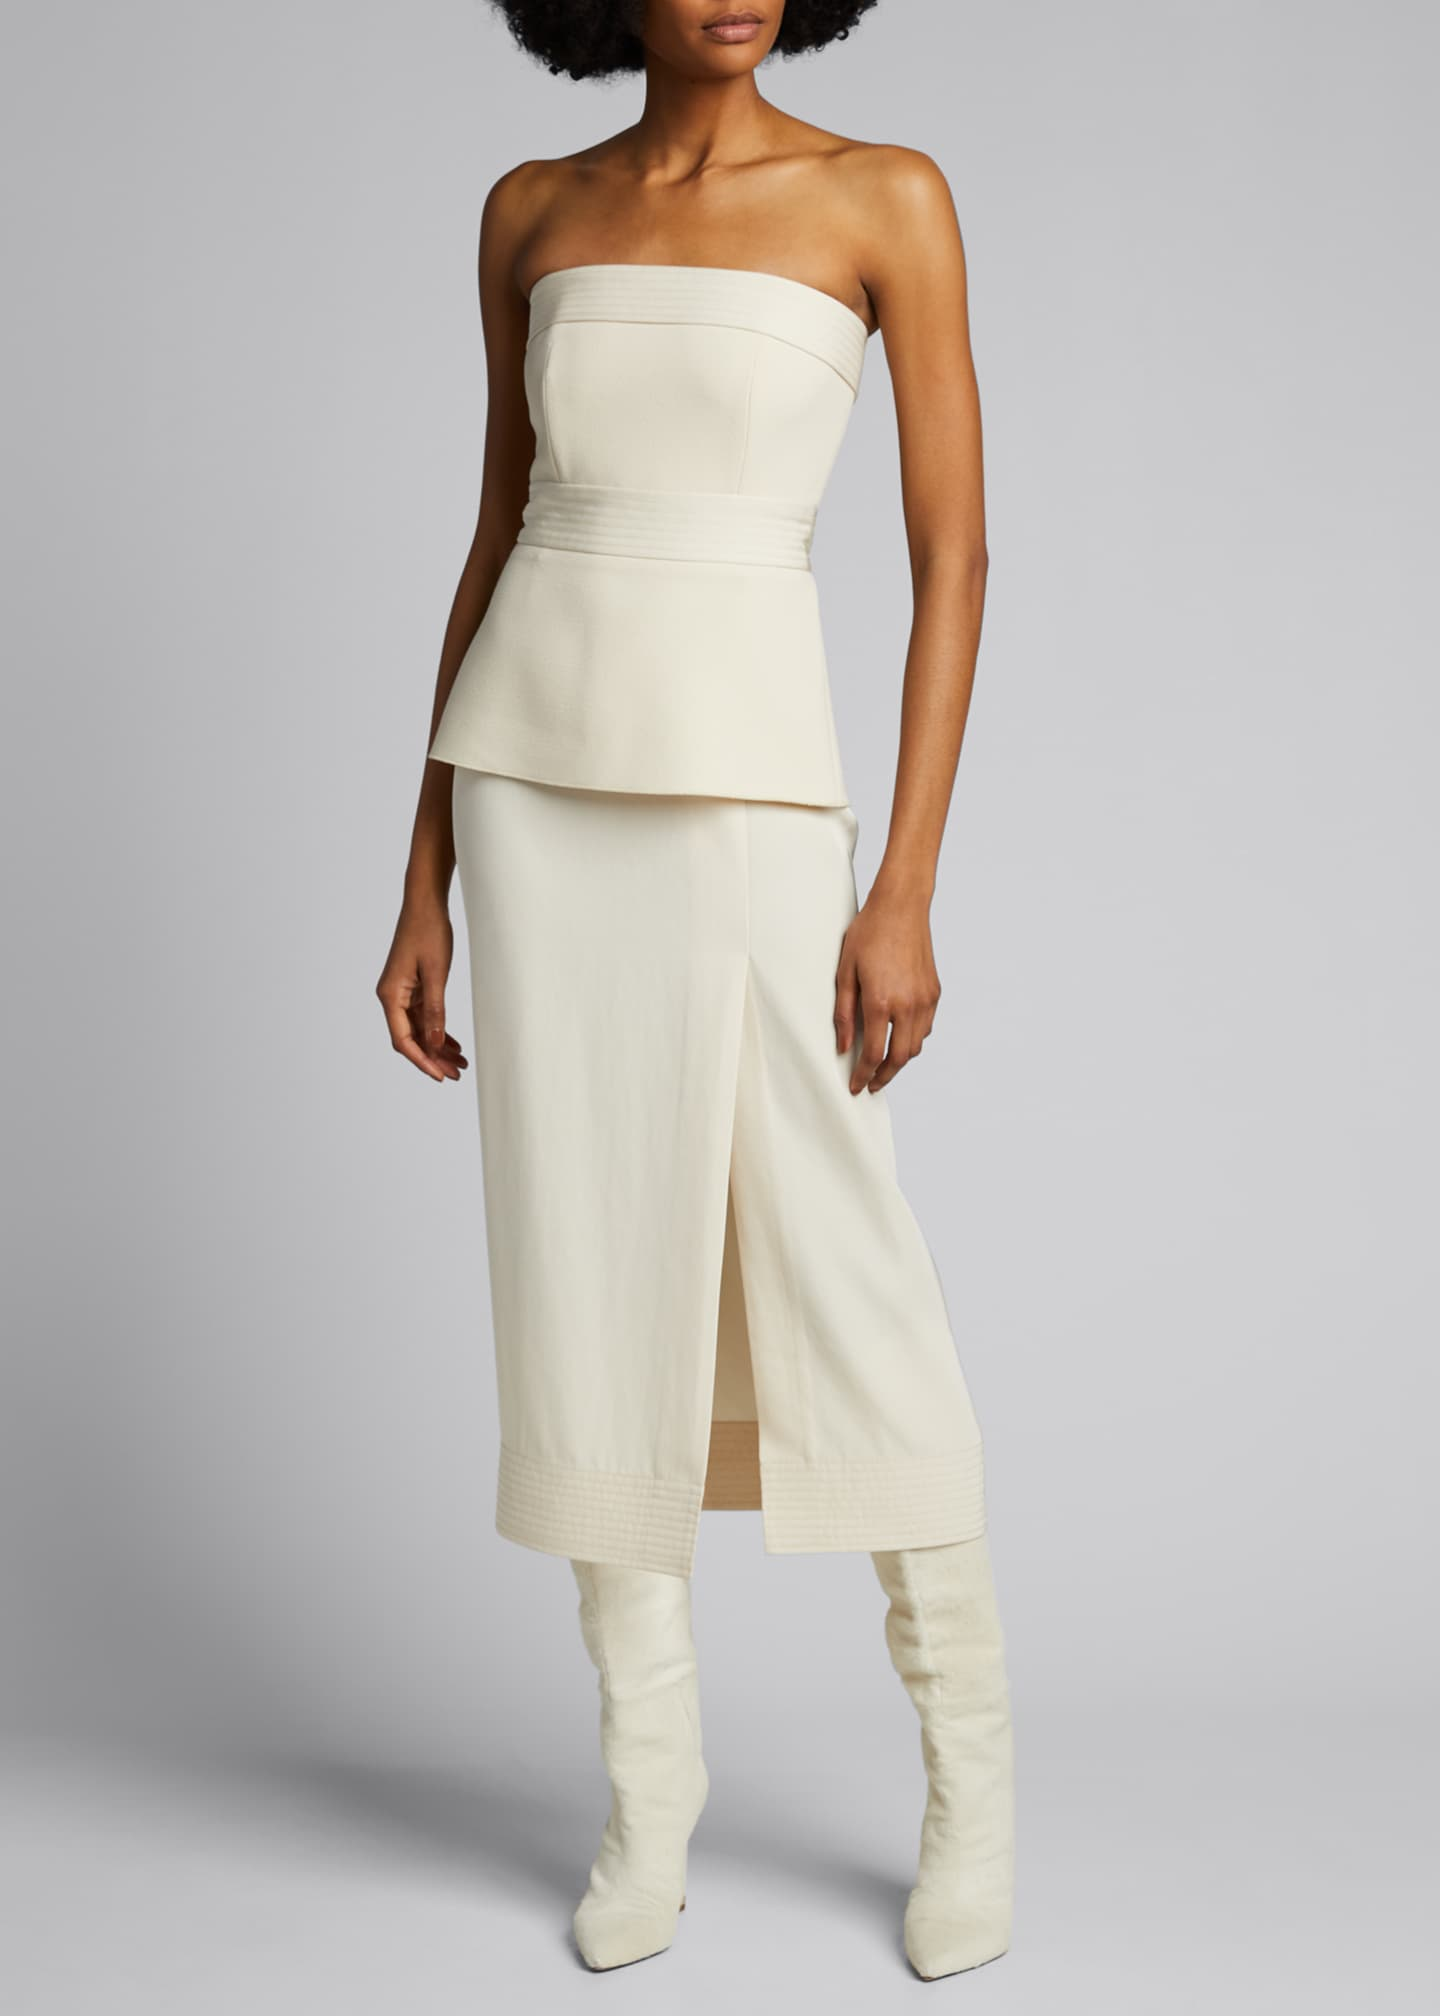 Image 3 of 5: Strapless Crepe Peplum Dress